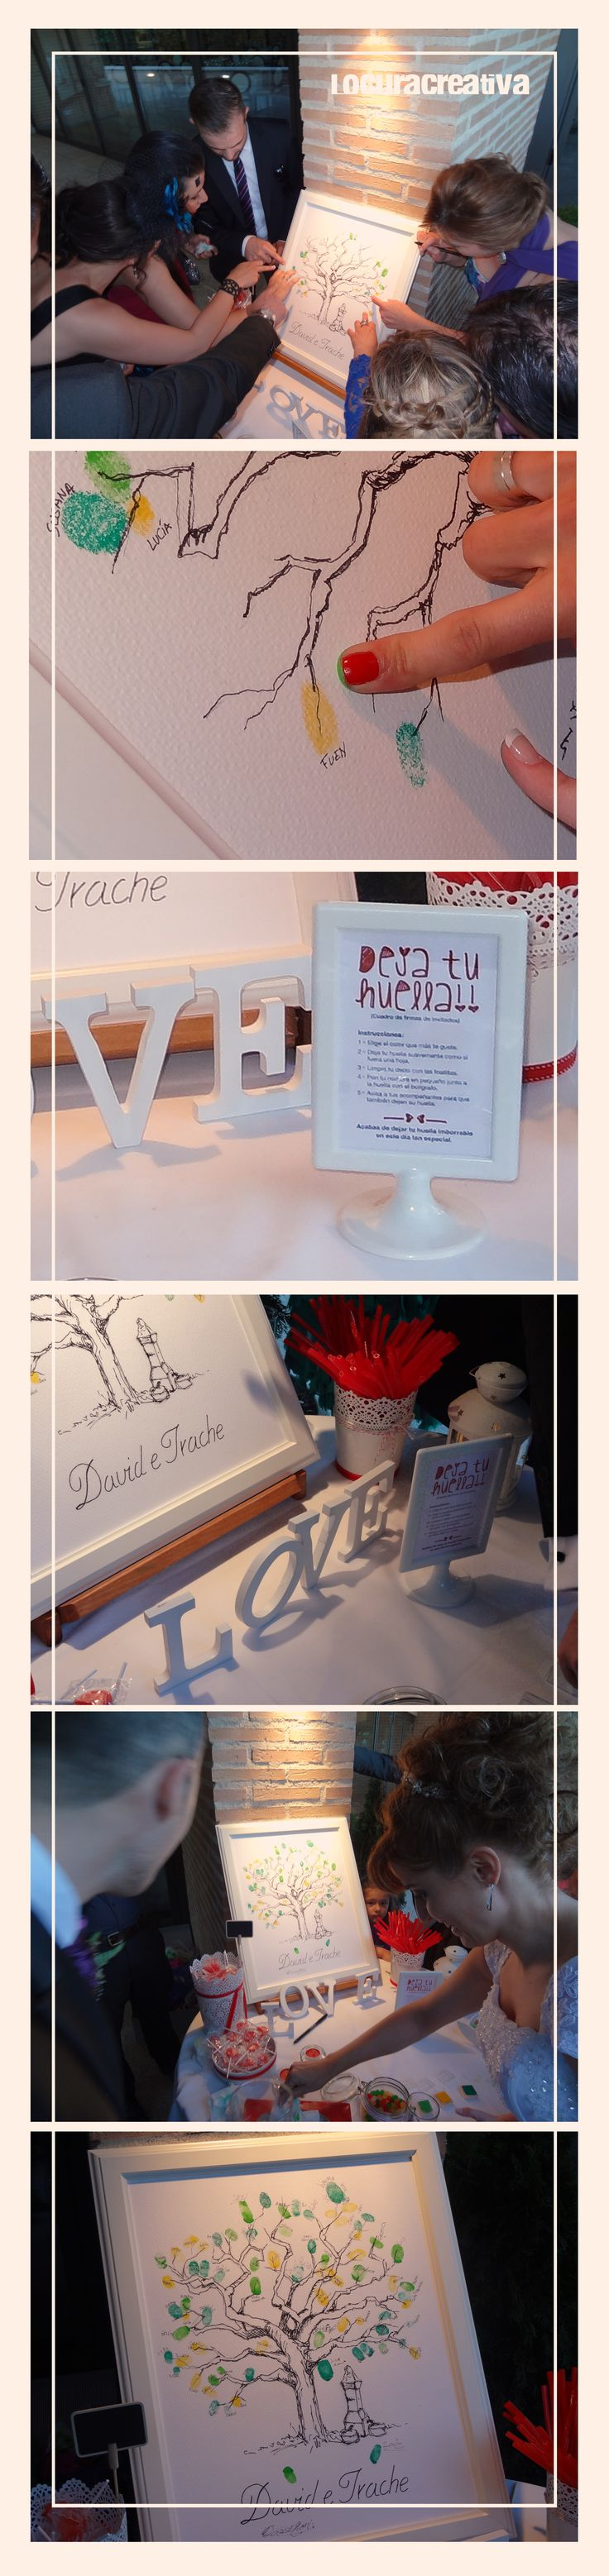 regalo bodas #arbol firmas #wedding #locuracreativa